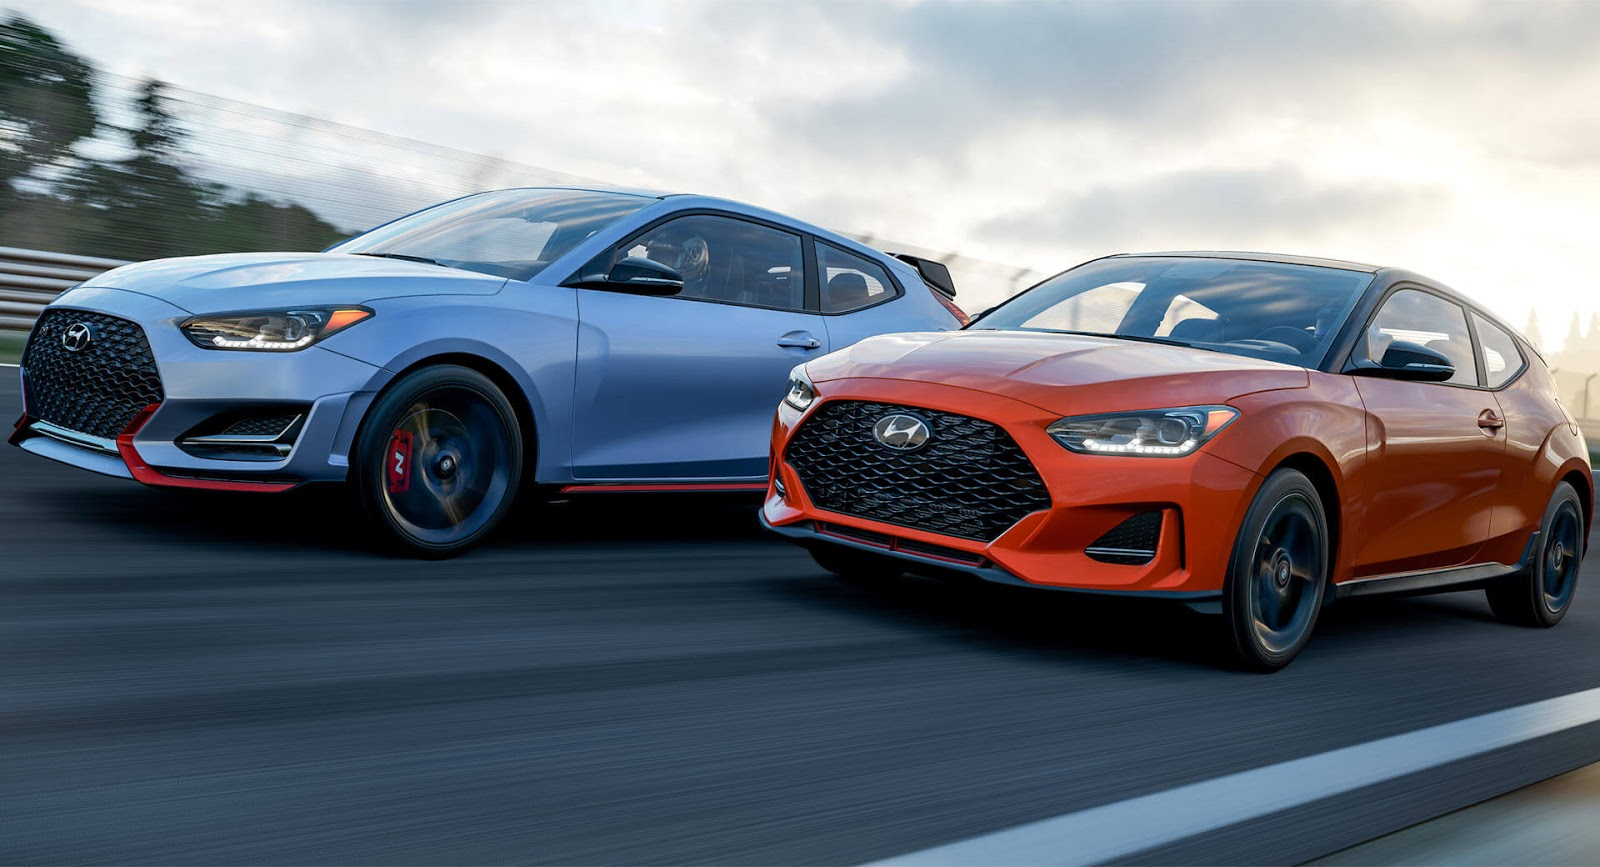 New Hyundai Veloster N Focuses On Ford's ST With 275 Horses